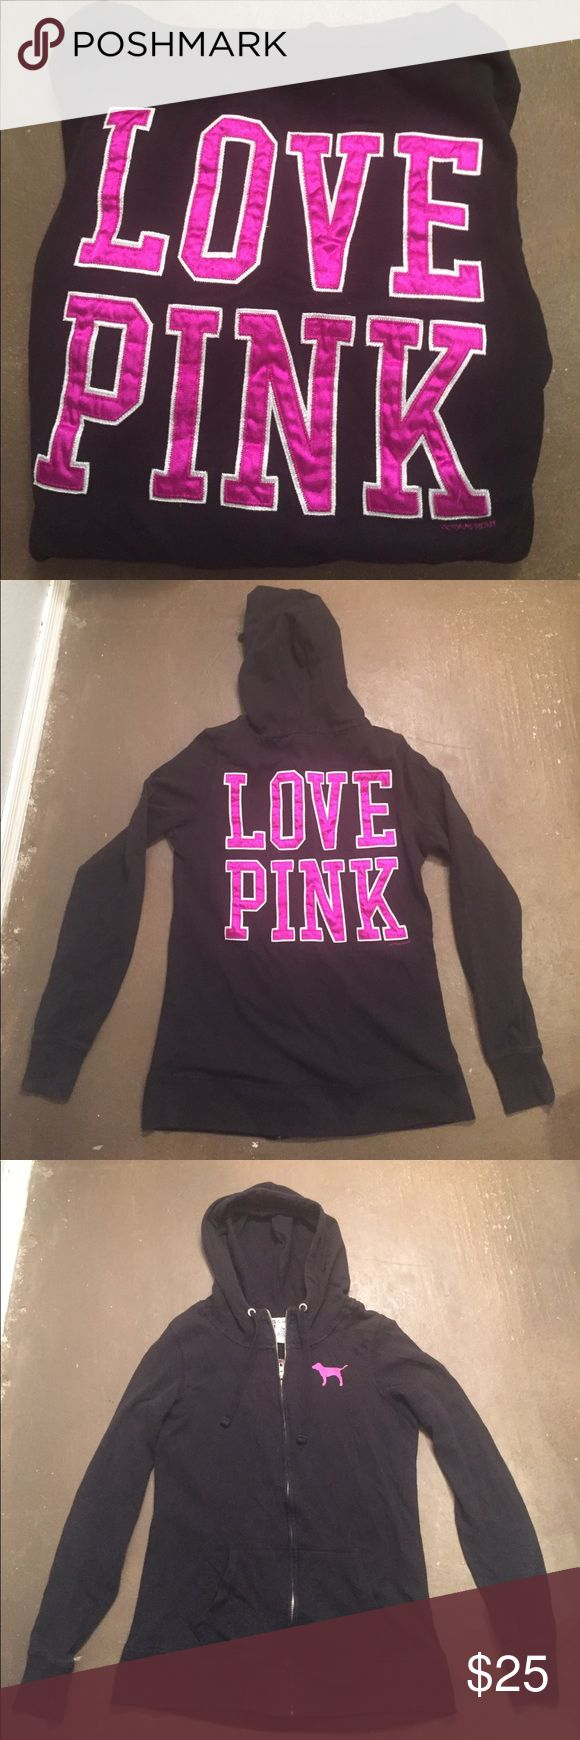 PINK VS Black ZIp Up Hoodie Women's XS. Black zip up hoodie with front pockets. Has Love Pink patch on back and in good condition Preowned and no holes. PINK Victoria's Secret Tops Sweatshirts & Hoodies